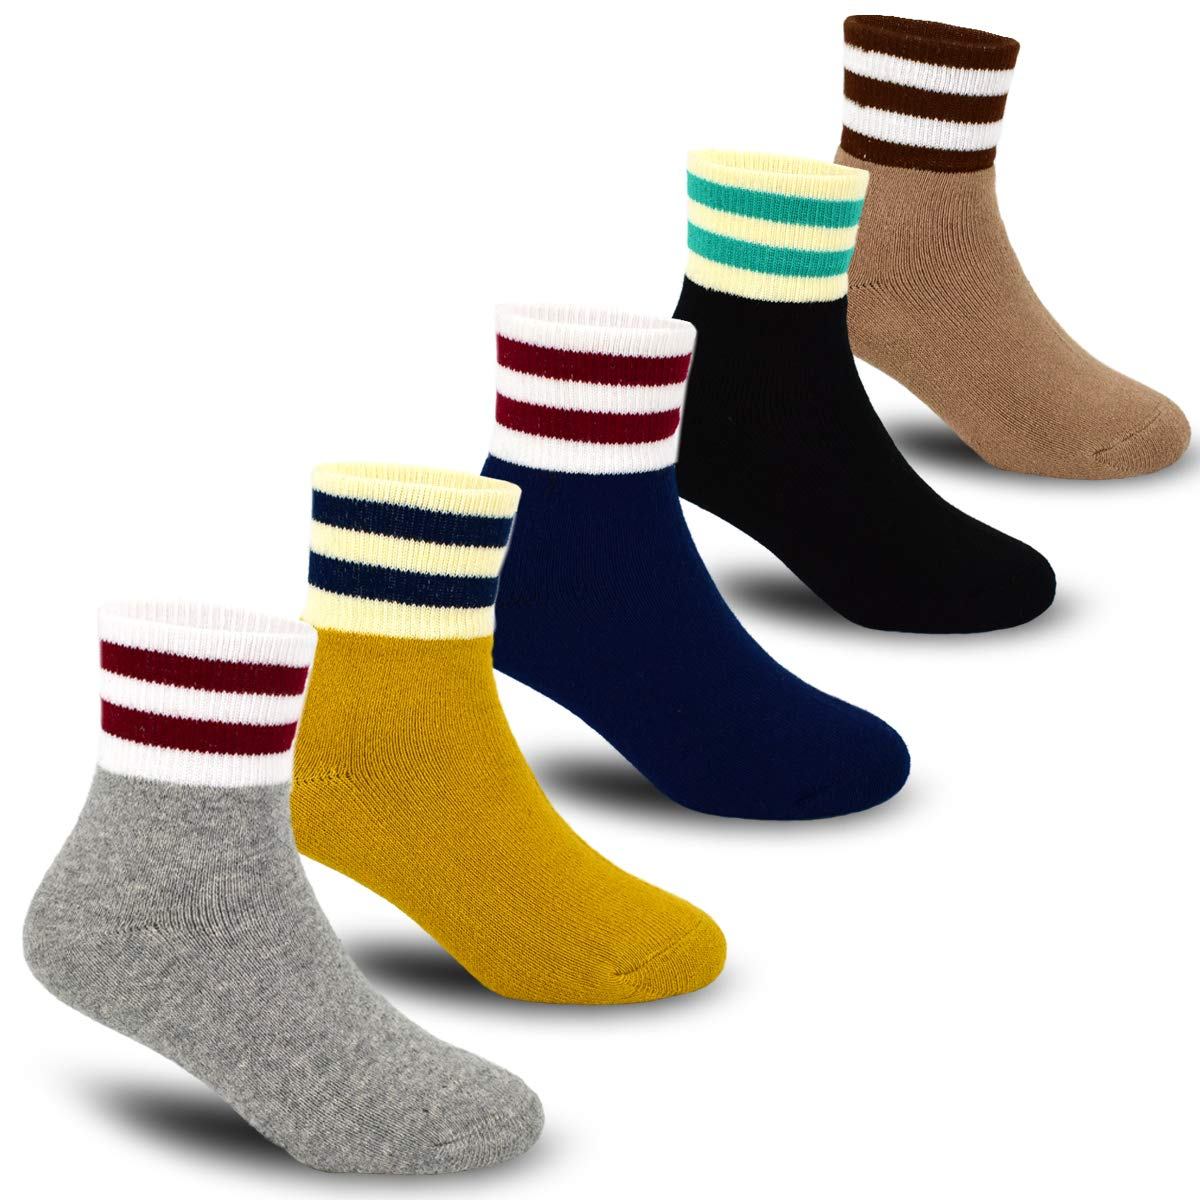 Boys Thick Cotton Socks Kids Winter Warm Socks 5 Pack